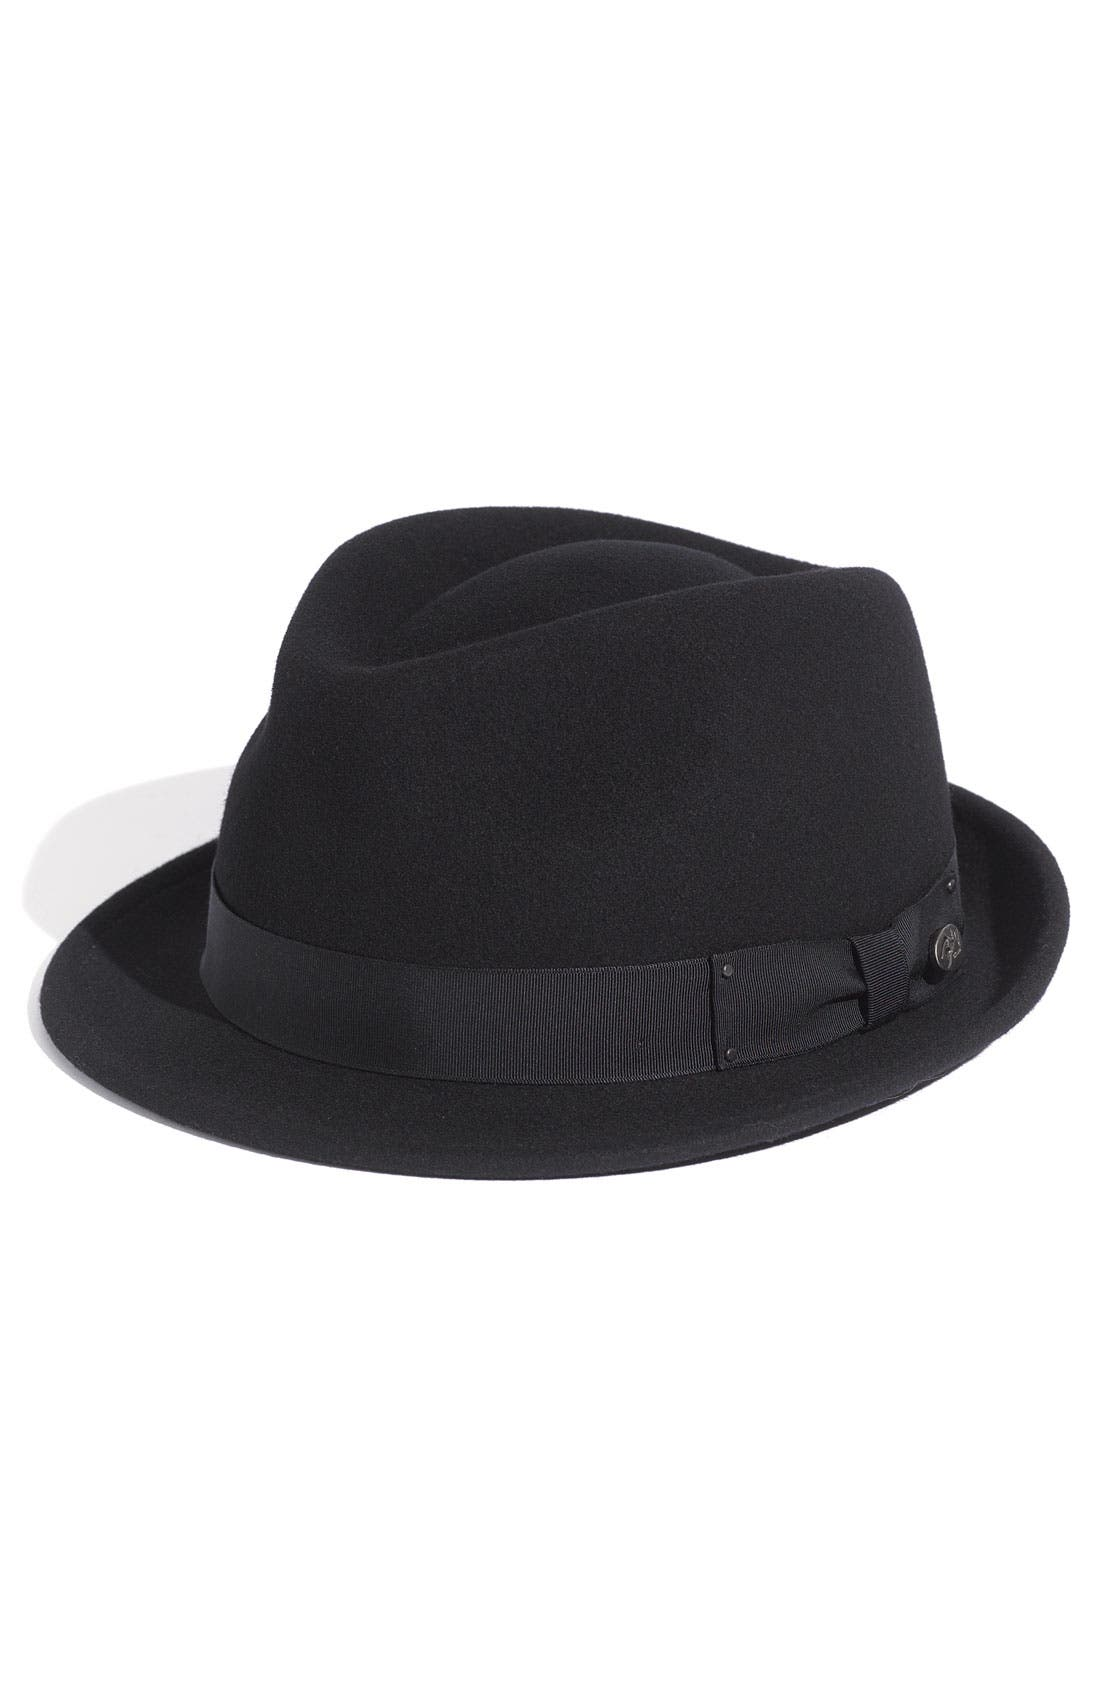 Main Image - Bailey 'Wynn' Packable Fedora